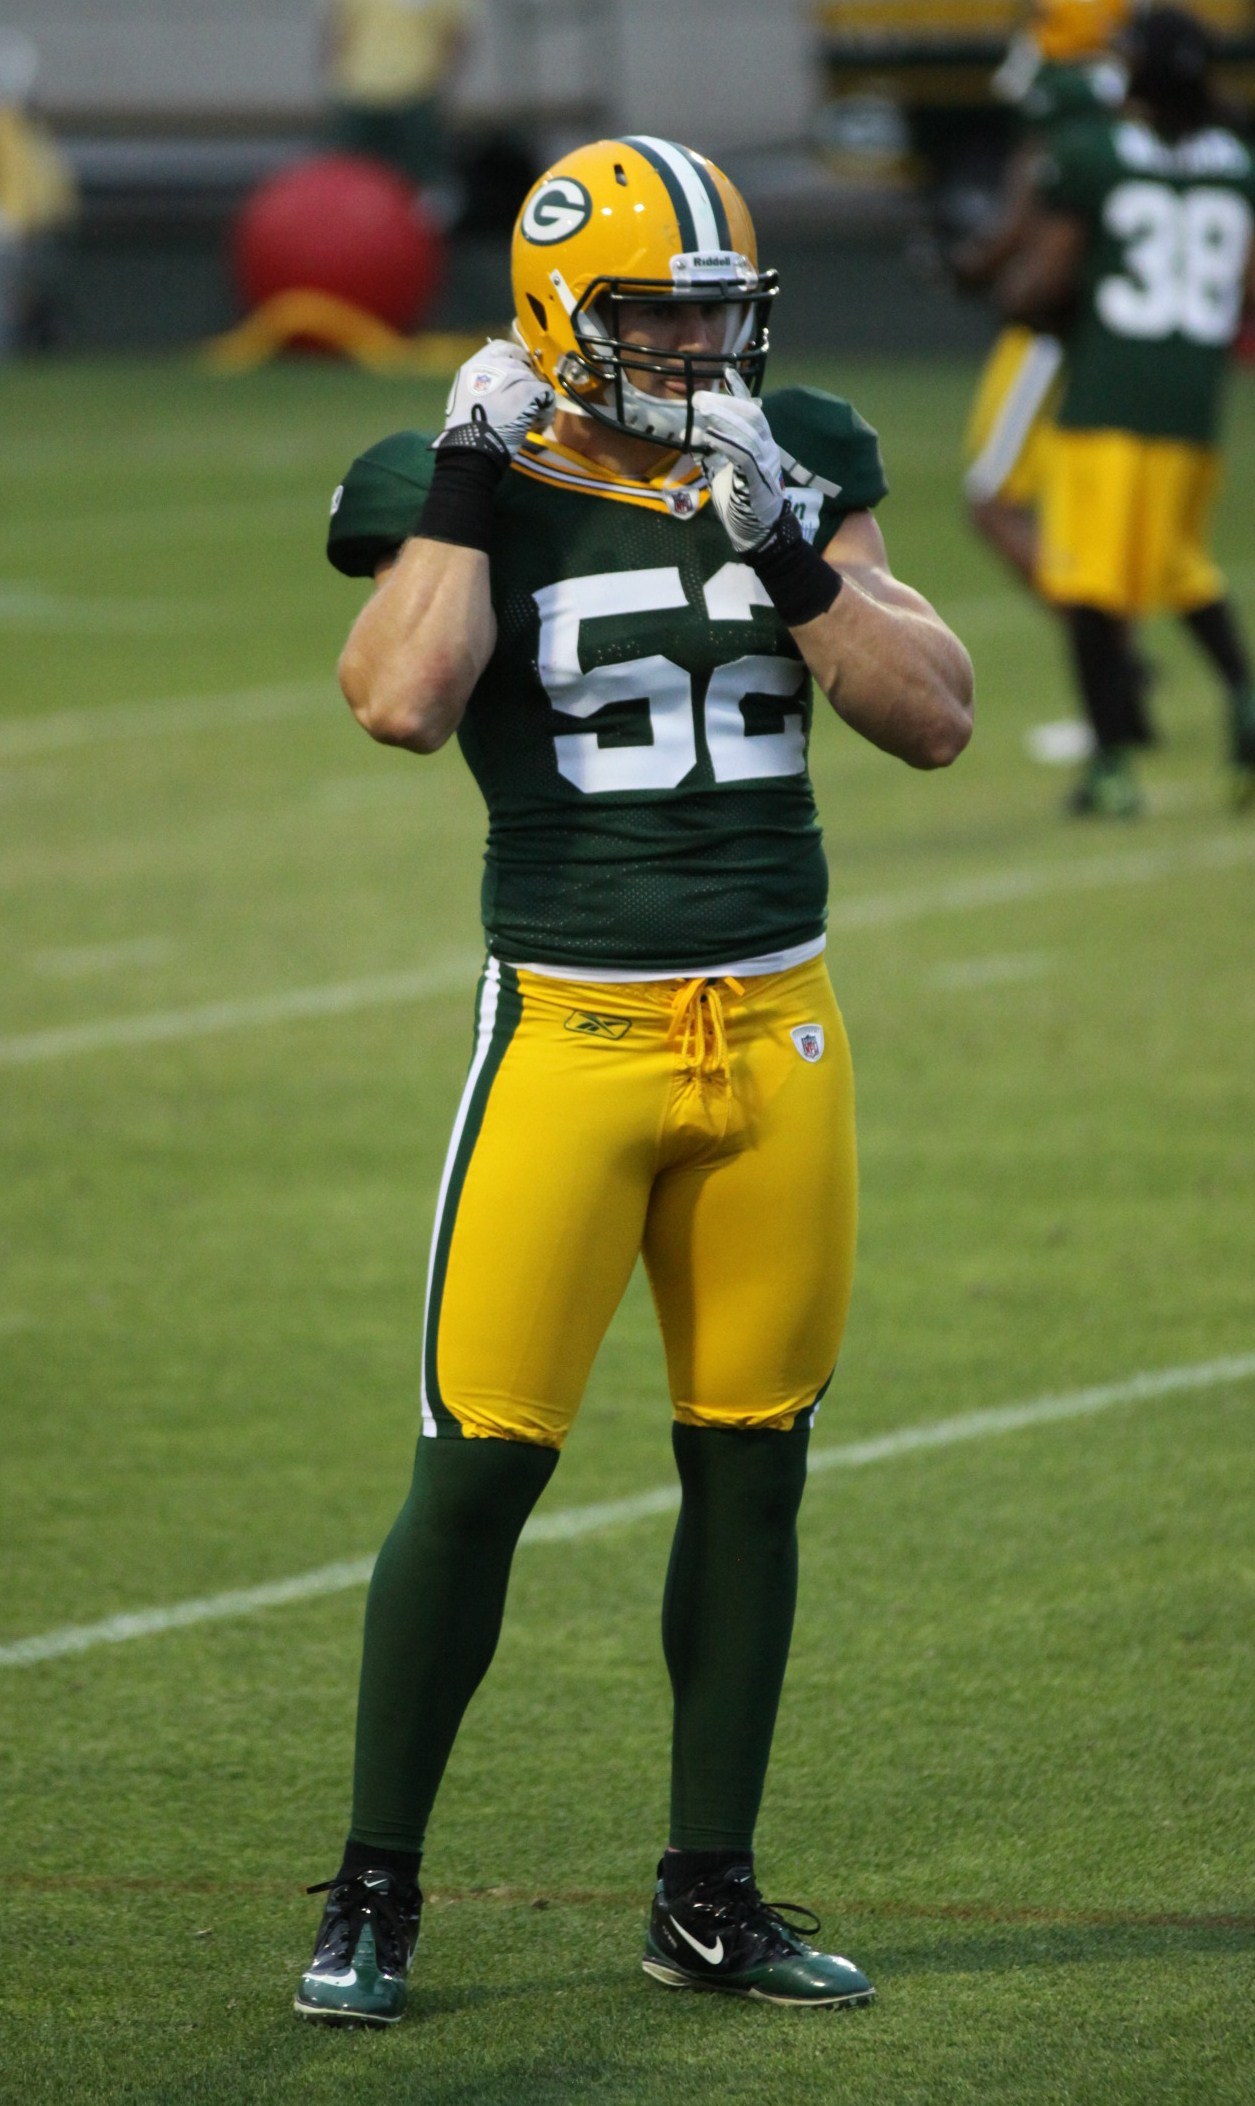 NFL Jerseys Cheap - Clay Matthews III - Wikipedia, the free encyclopedia